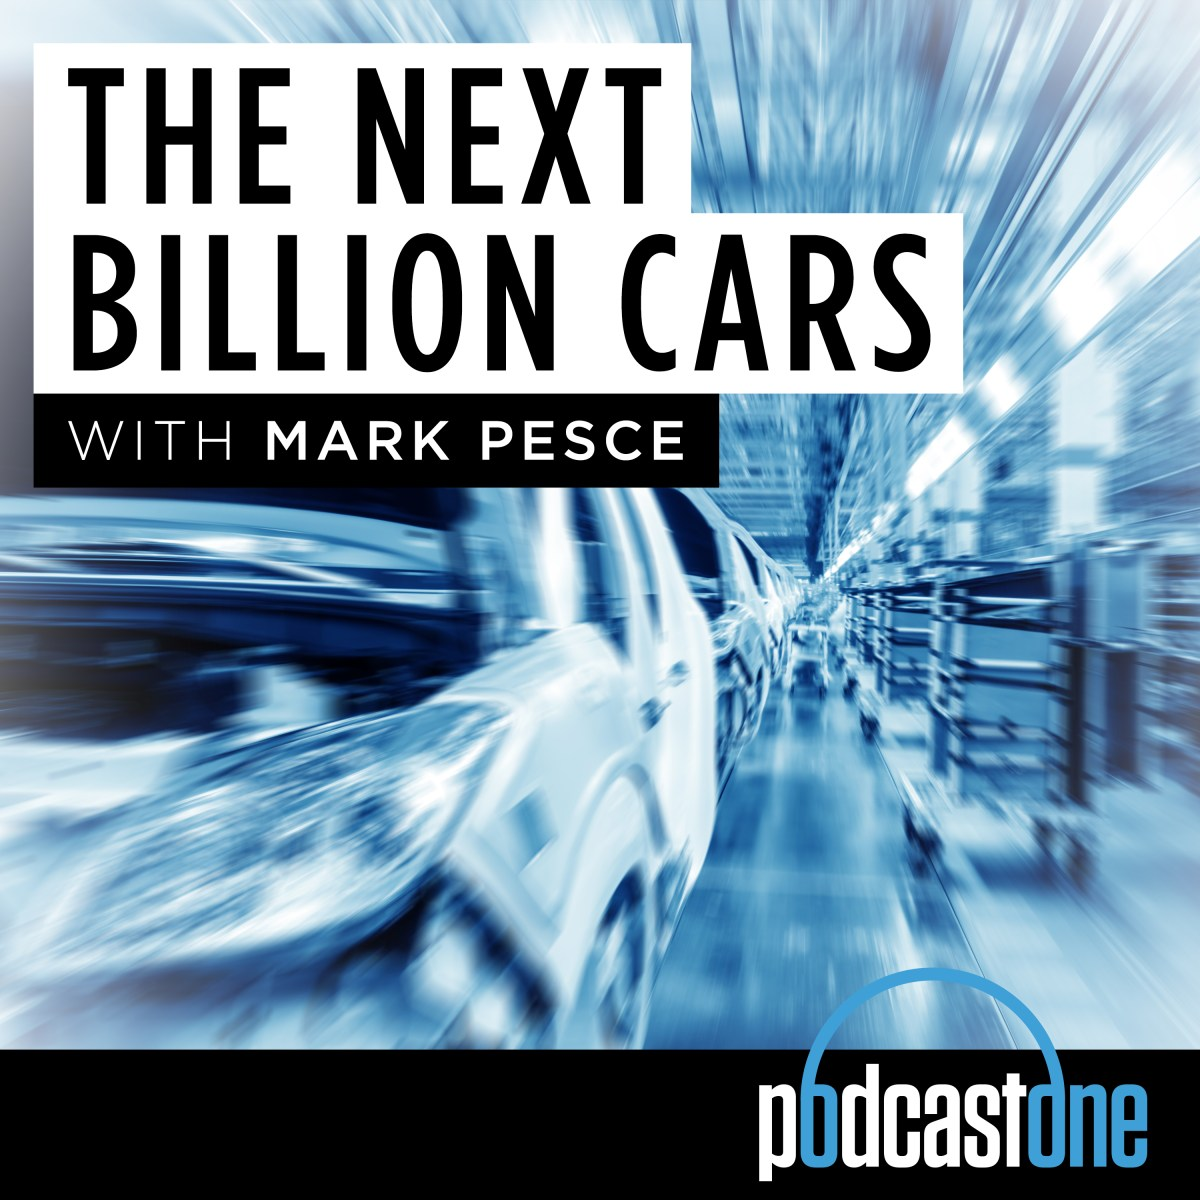 THE NEXT BILLION CARS Episode 4: The Next Billion Kilometers